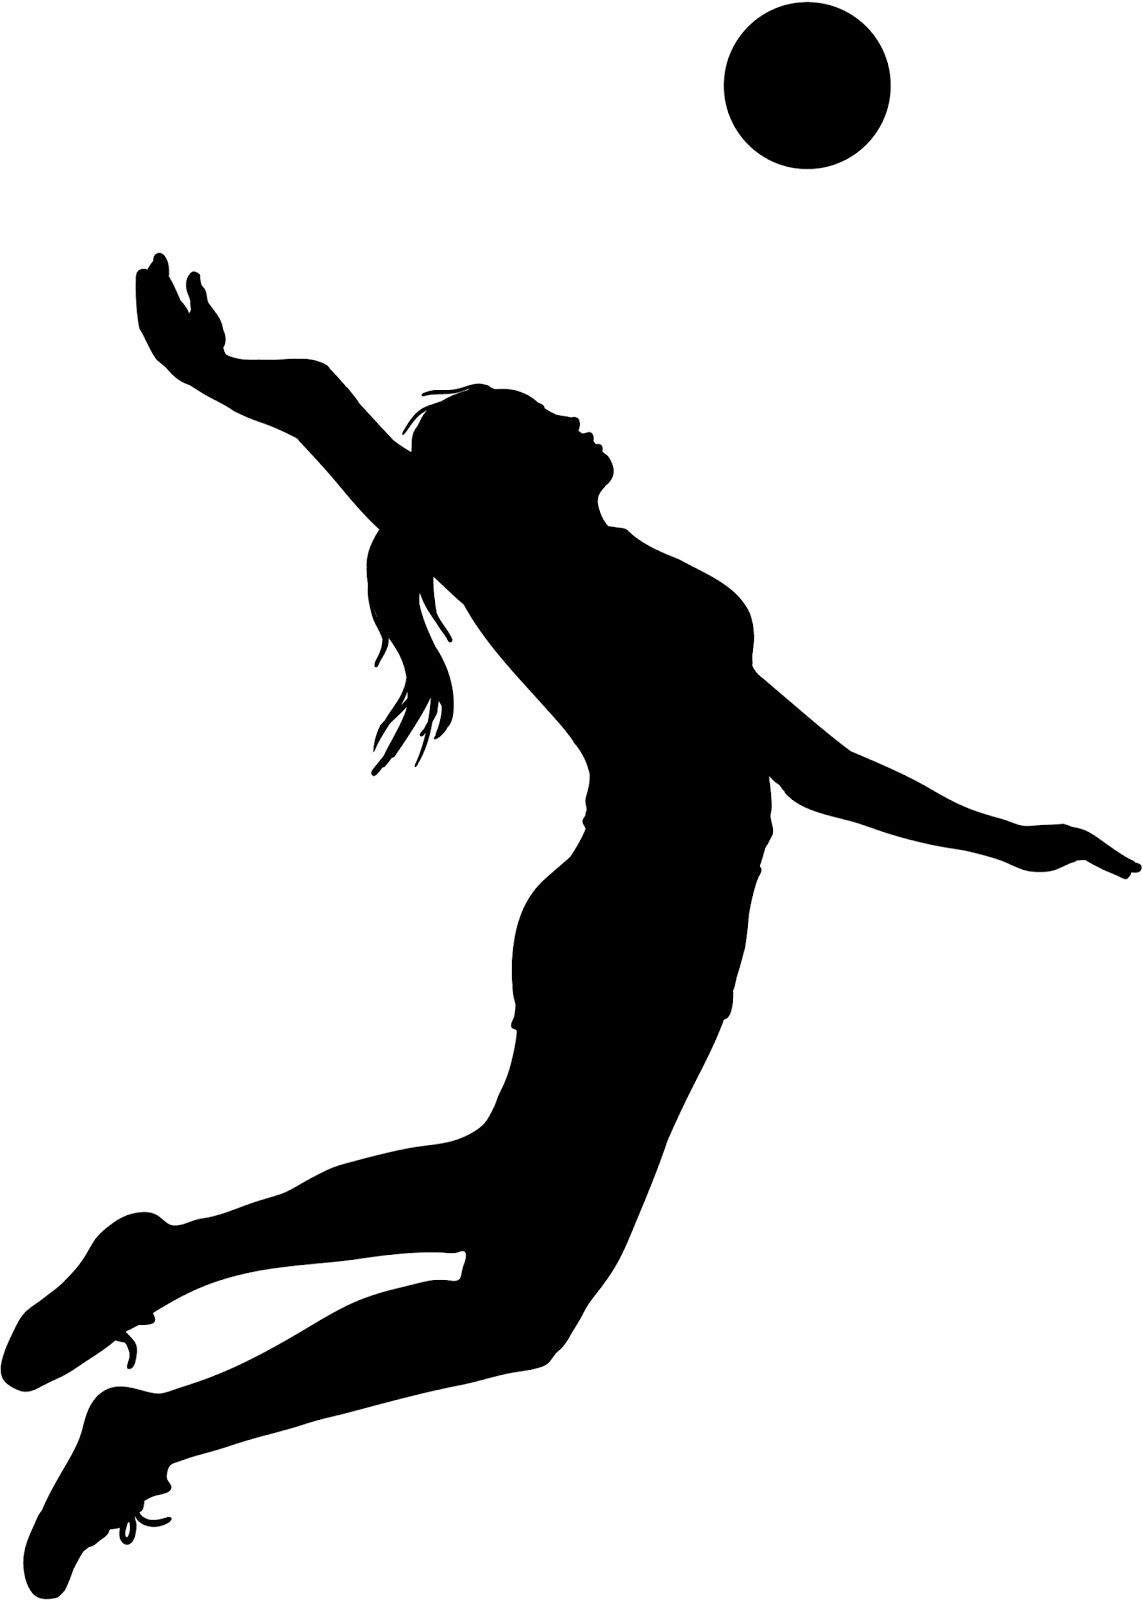 Related Image Olympic Volleyball Volleyball Drawing Volleyball Silhouette